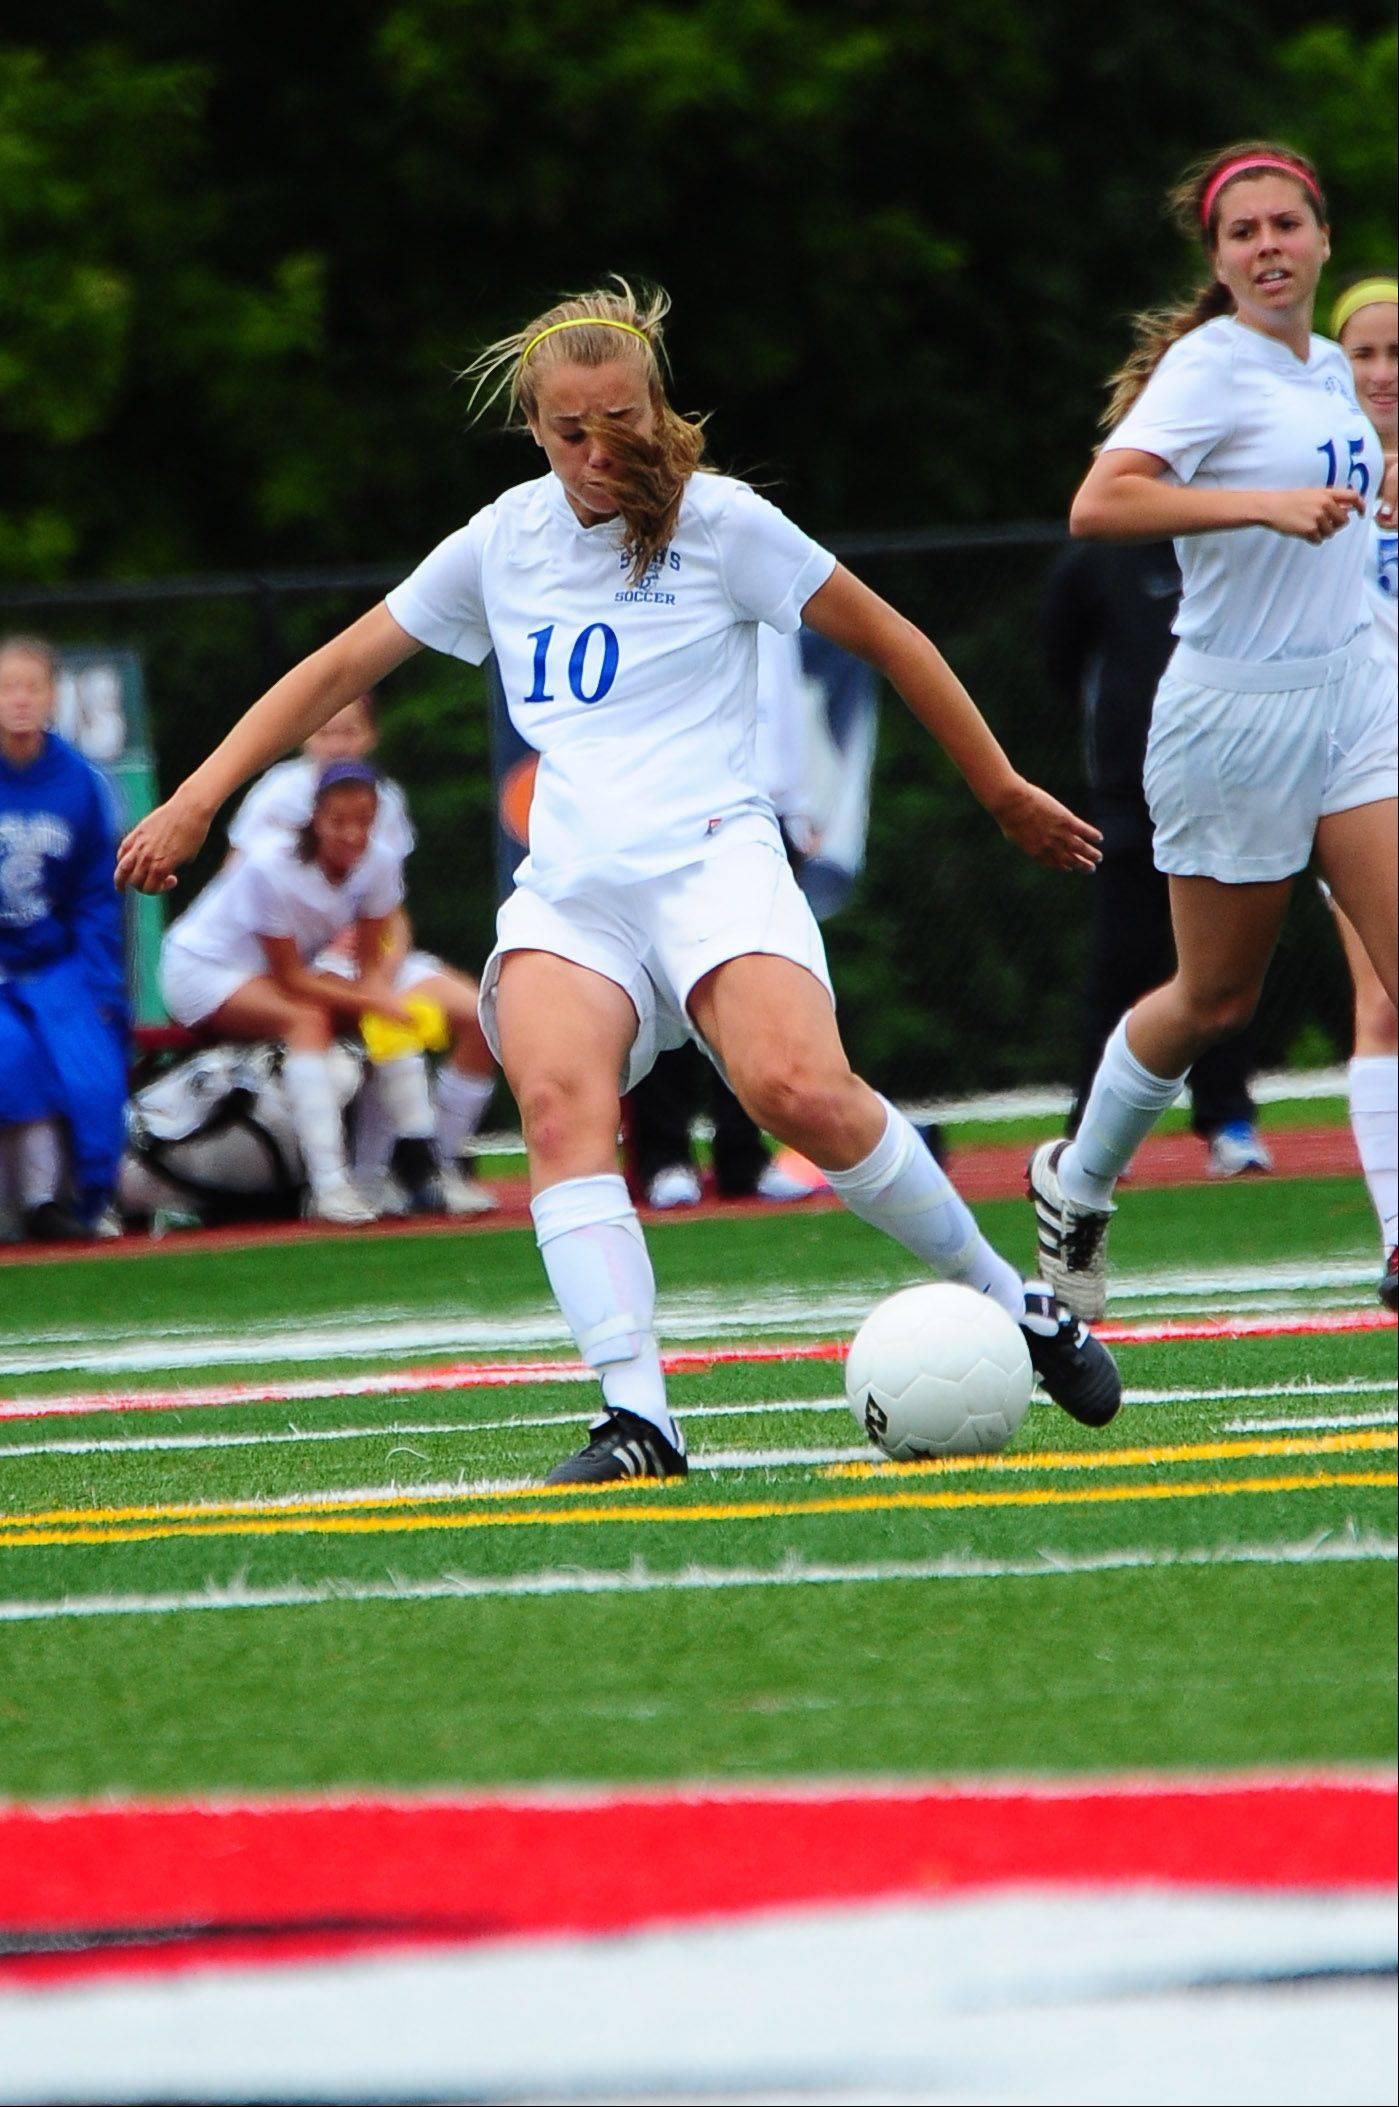 Amanda Gaggioli, the lone goal scorer during Friday's girls soccer Class 2A semifinal match between St. Francis and St. Viator, moves to put a shot on goal.